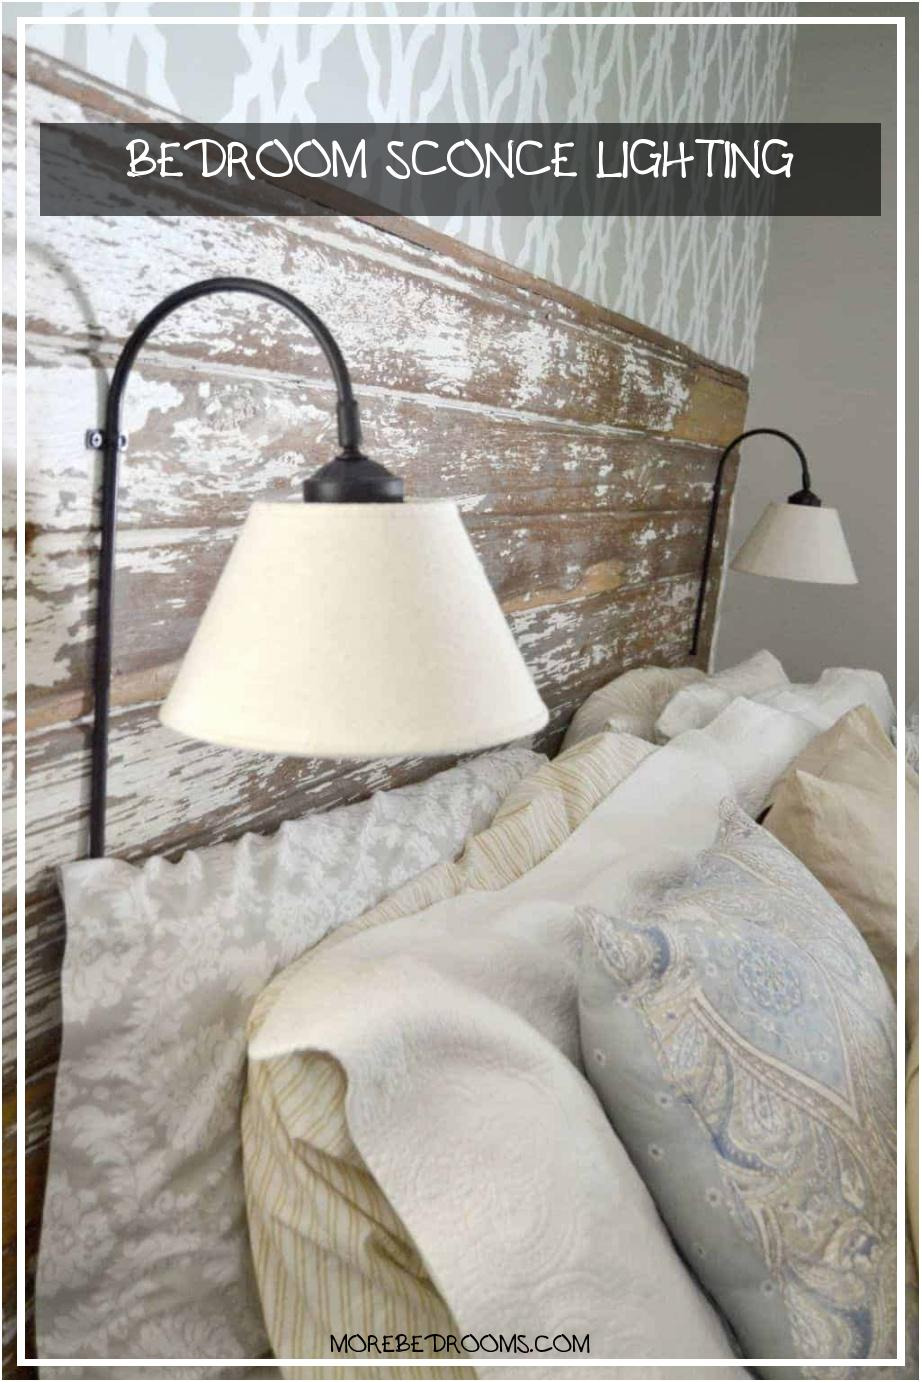 Bedroom Sconce Lighting Rbdnls Awesome Repurposed Lamps Be E Diy Plug In Wall Sconce for Headboard9211382hfsx